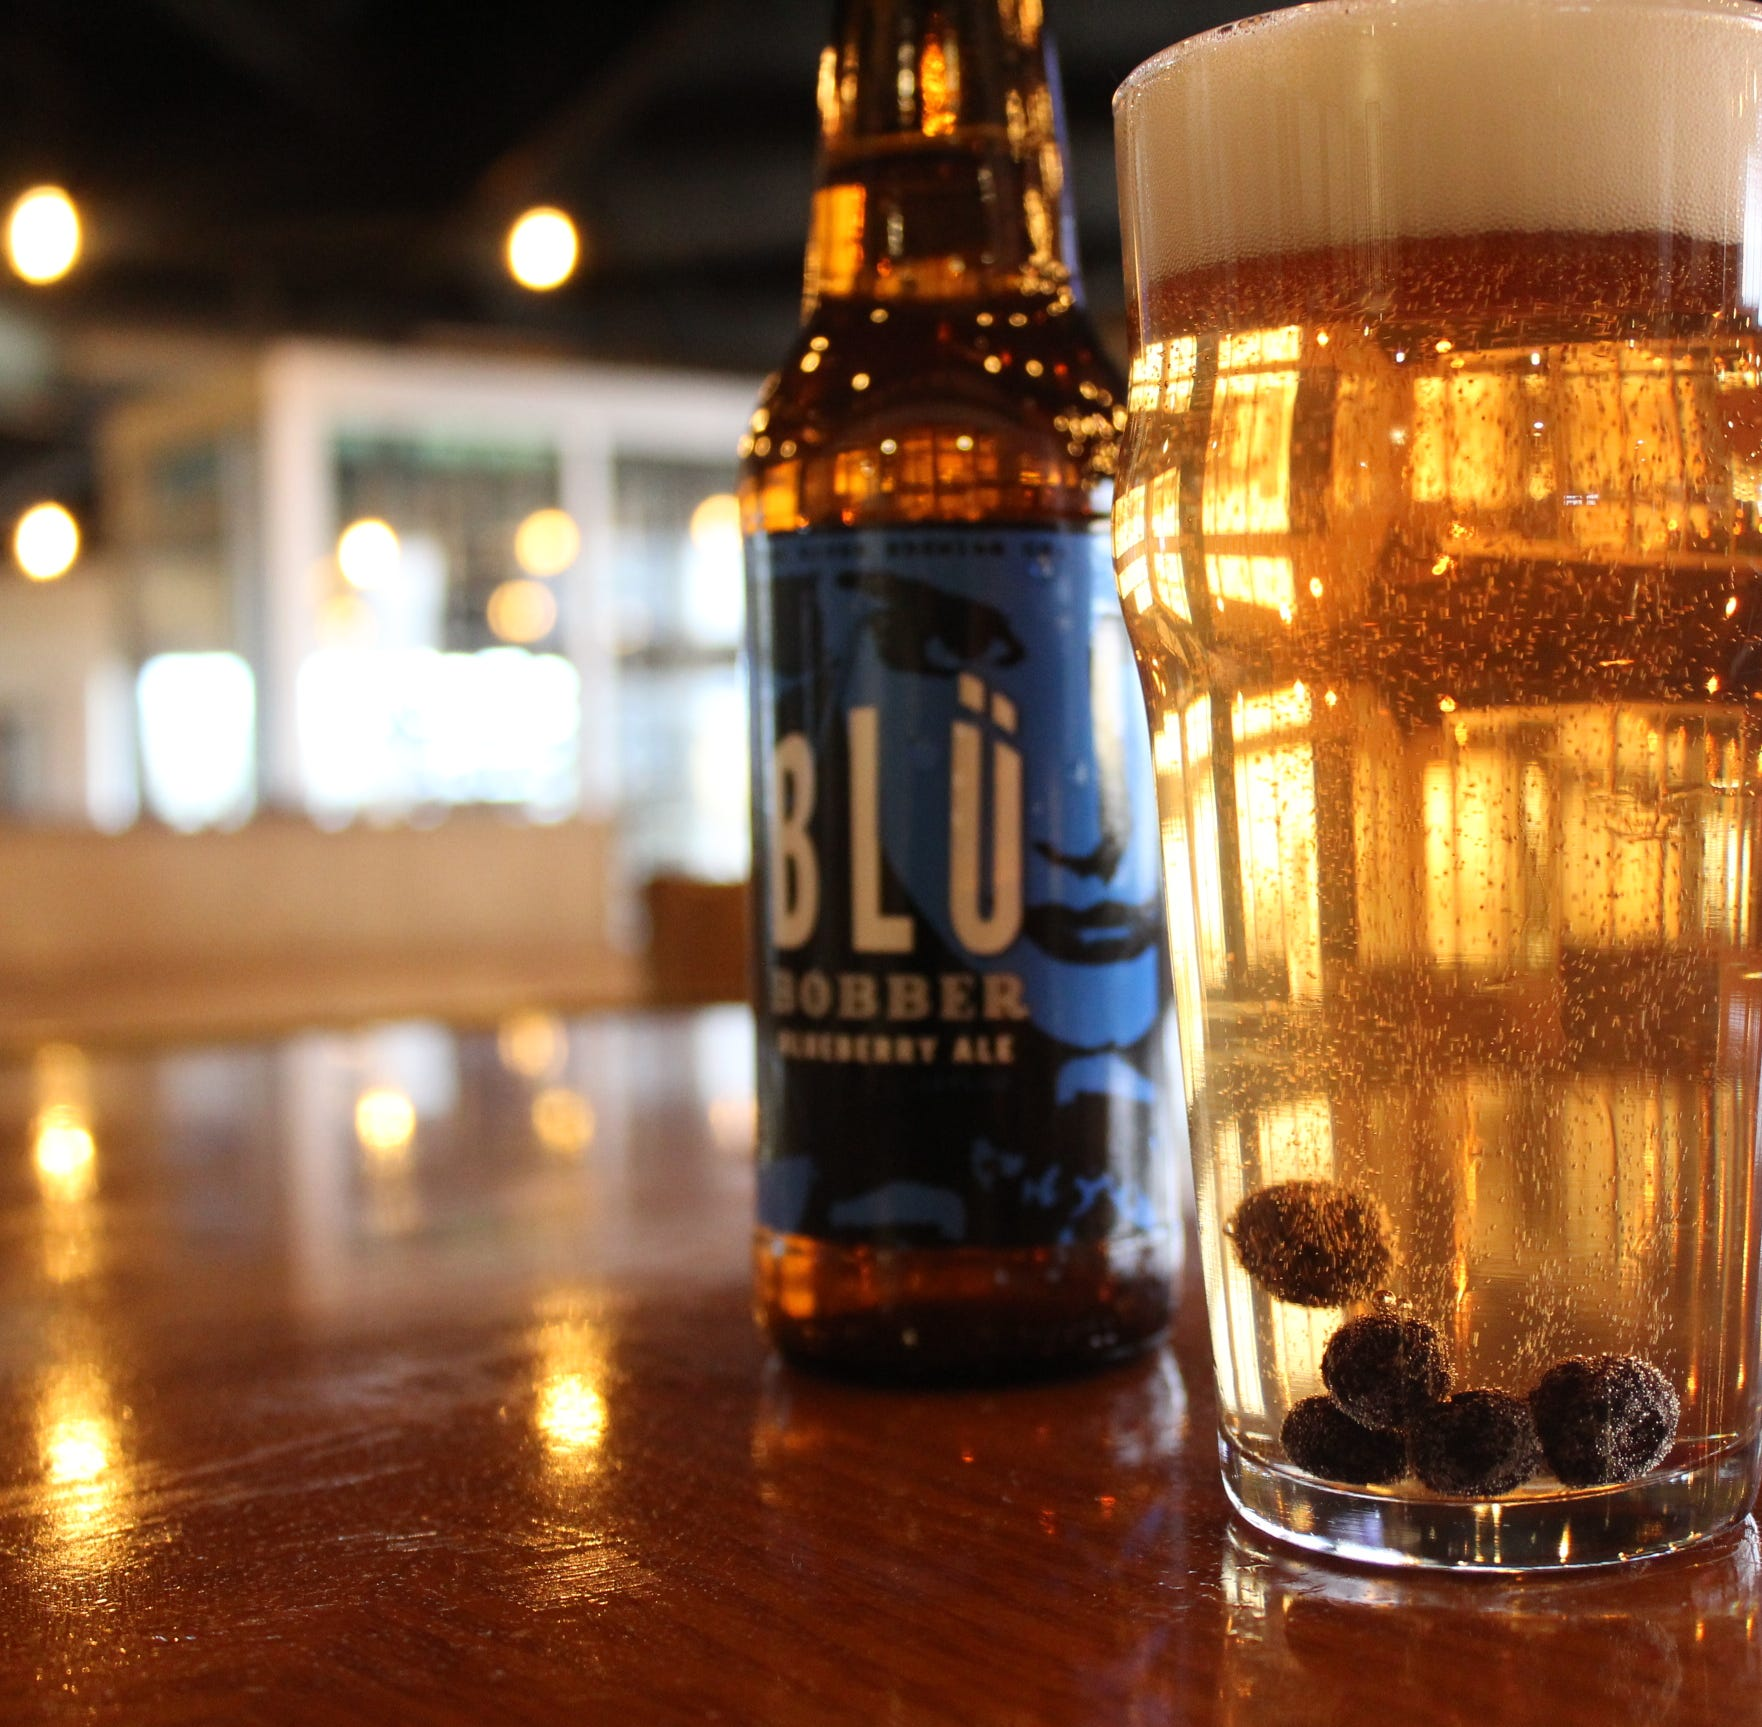 Fox River Brewing Company's Blü Bobber beer to debut at Miller Park opening day